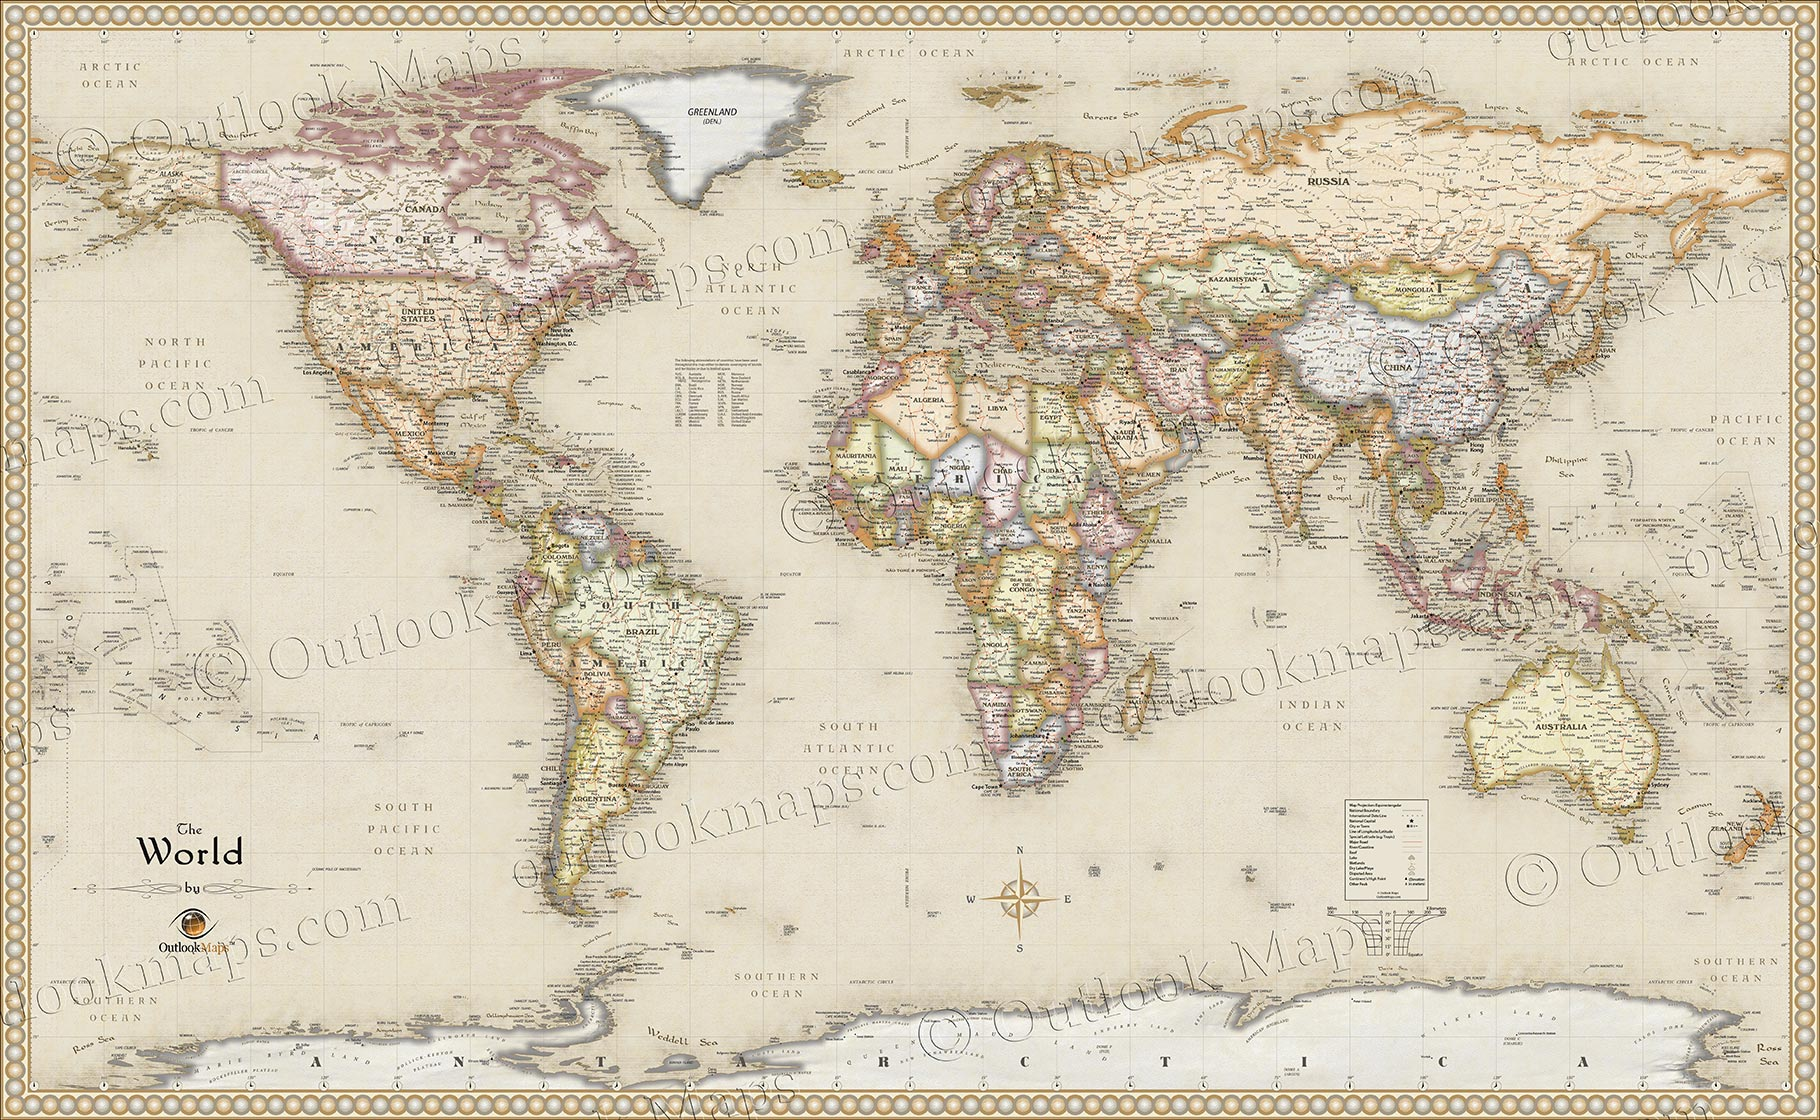 World antique style map current map in old vintage map style antique style world wall map gumiabroncs Gallery